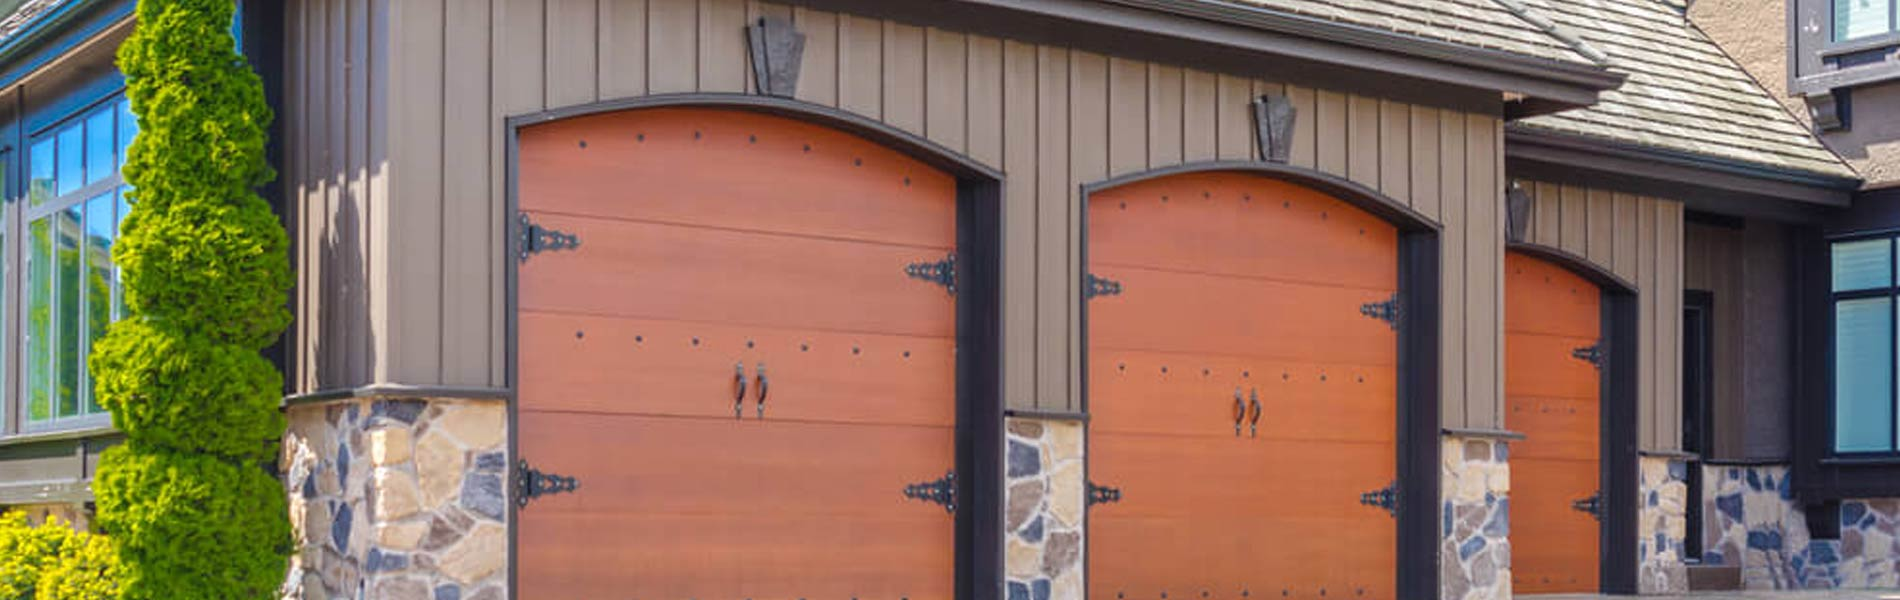 Garage Door Shop Avondale, AZ 866-805-4802